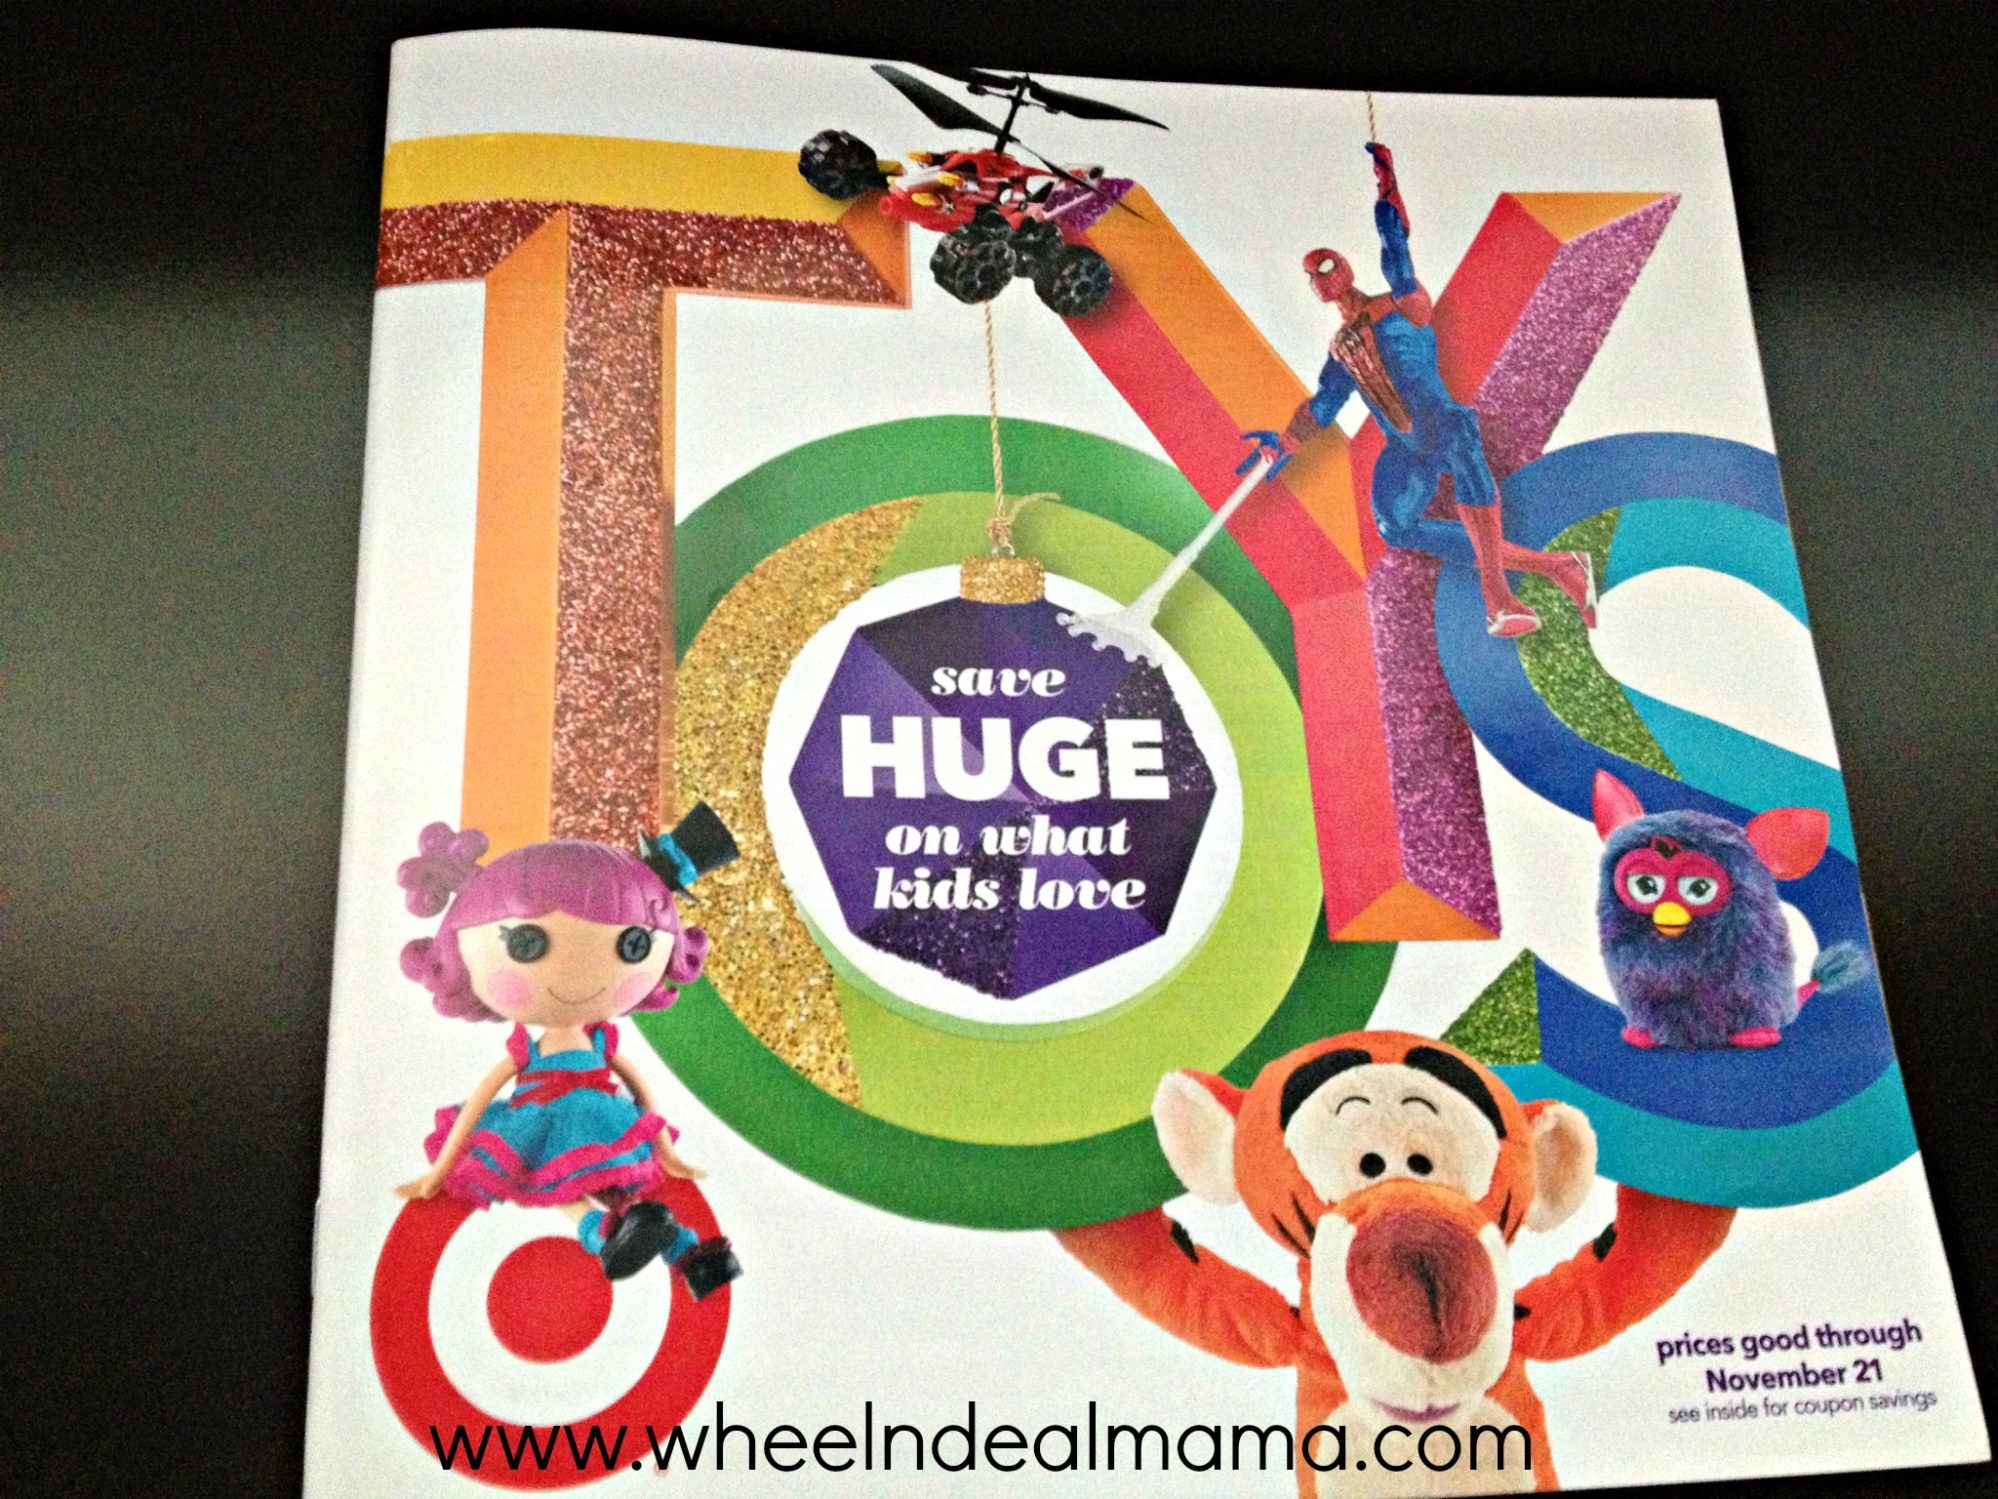 Target Toy For 10 And Up : Target toy book with tons of coupons wheel n deal